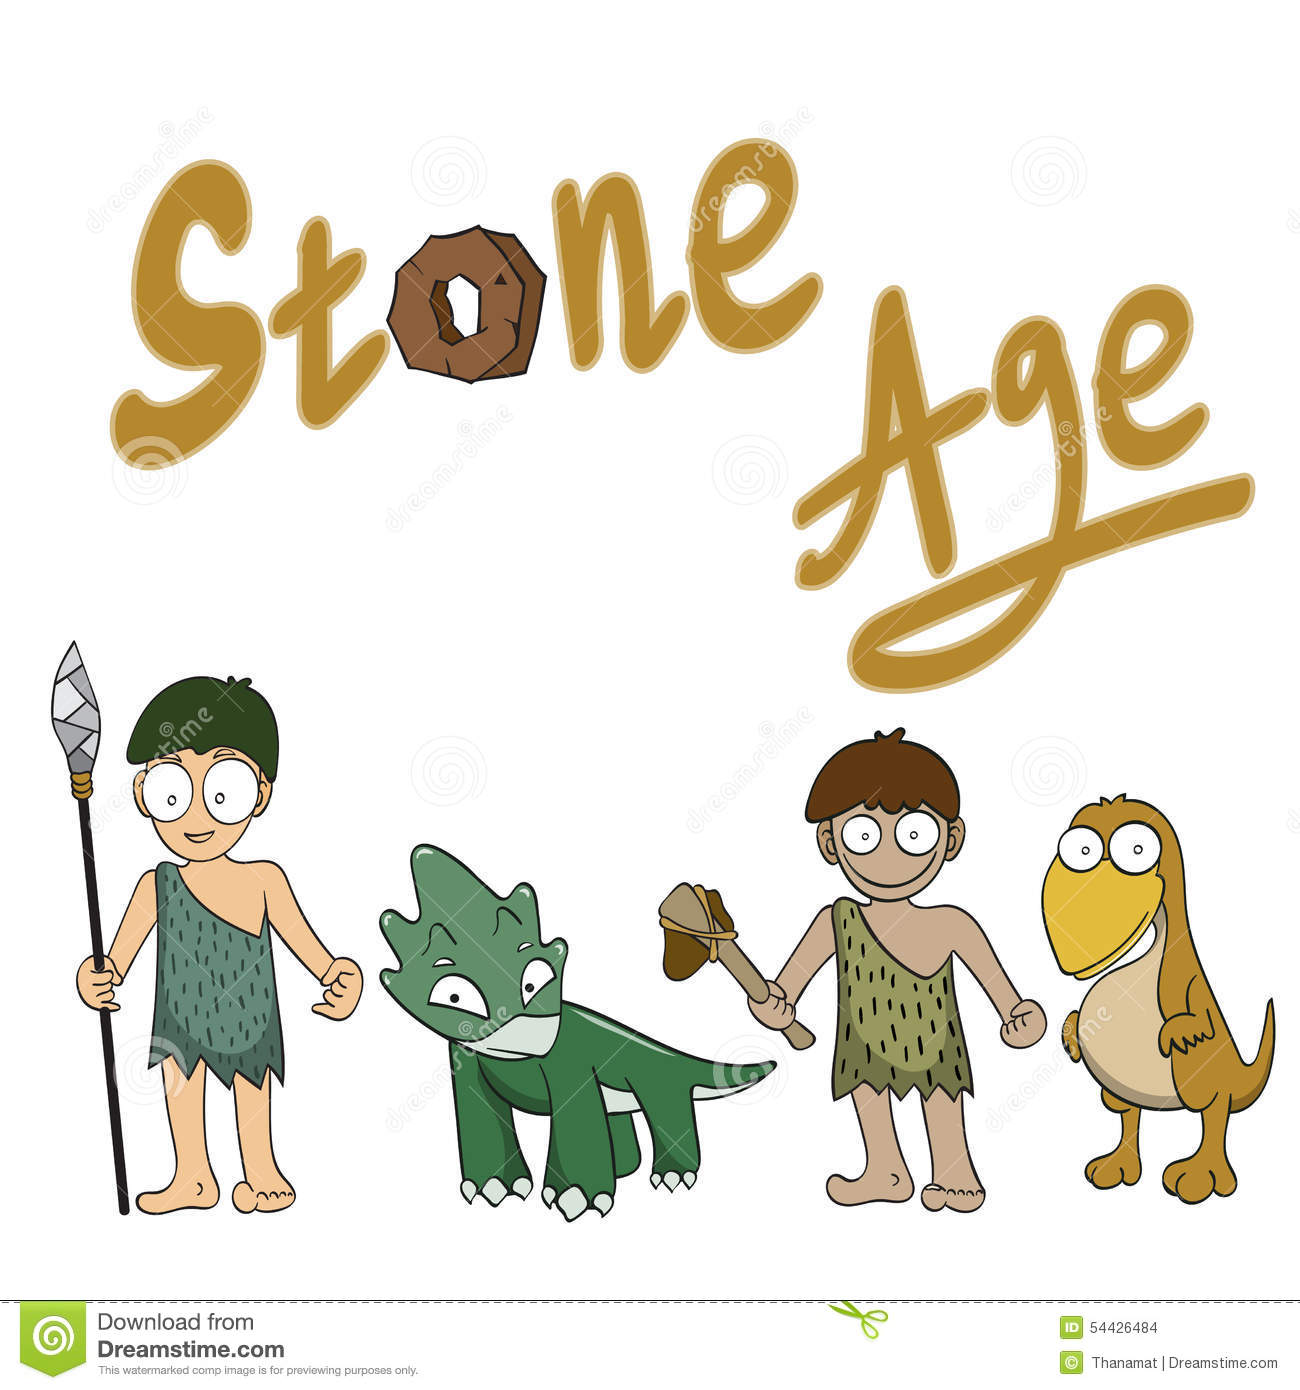 Stone Age People Cartoon Stock Vector - Image: 54426484